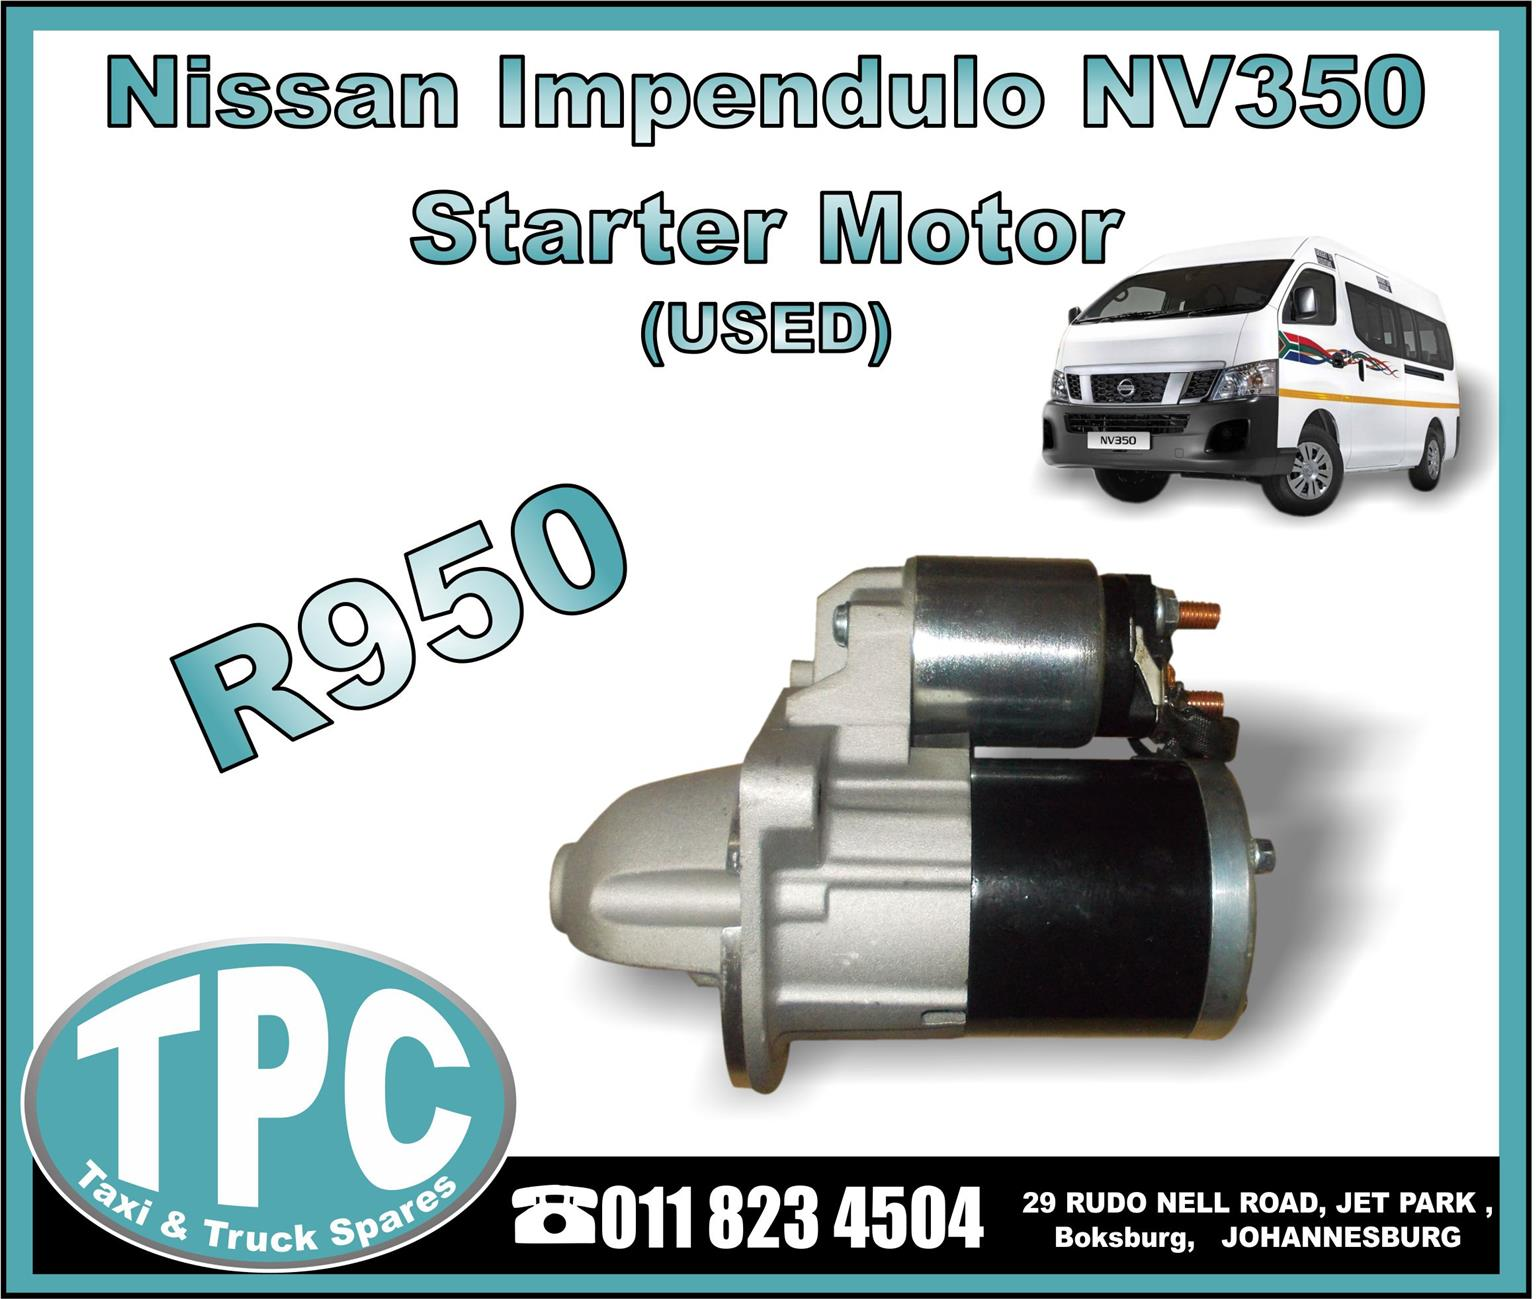 Nissan Impendulo NV350 - Starter Motor - USED -New And Used Replacement Taxi Parts - TPC